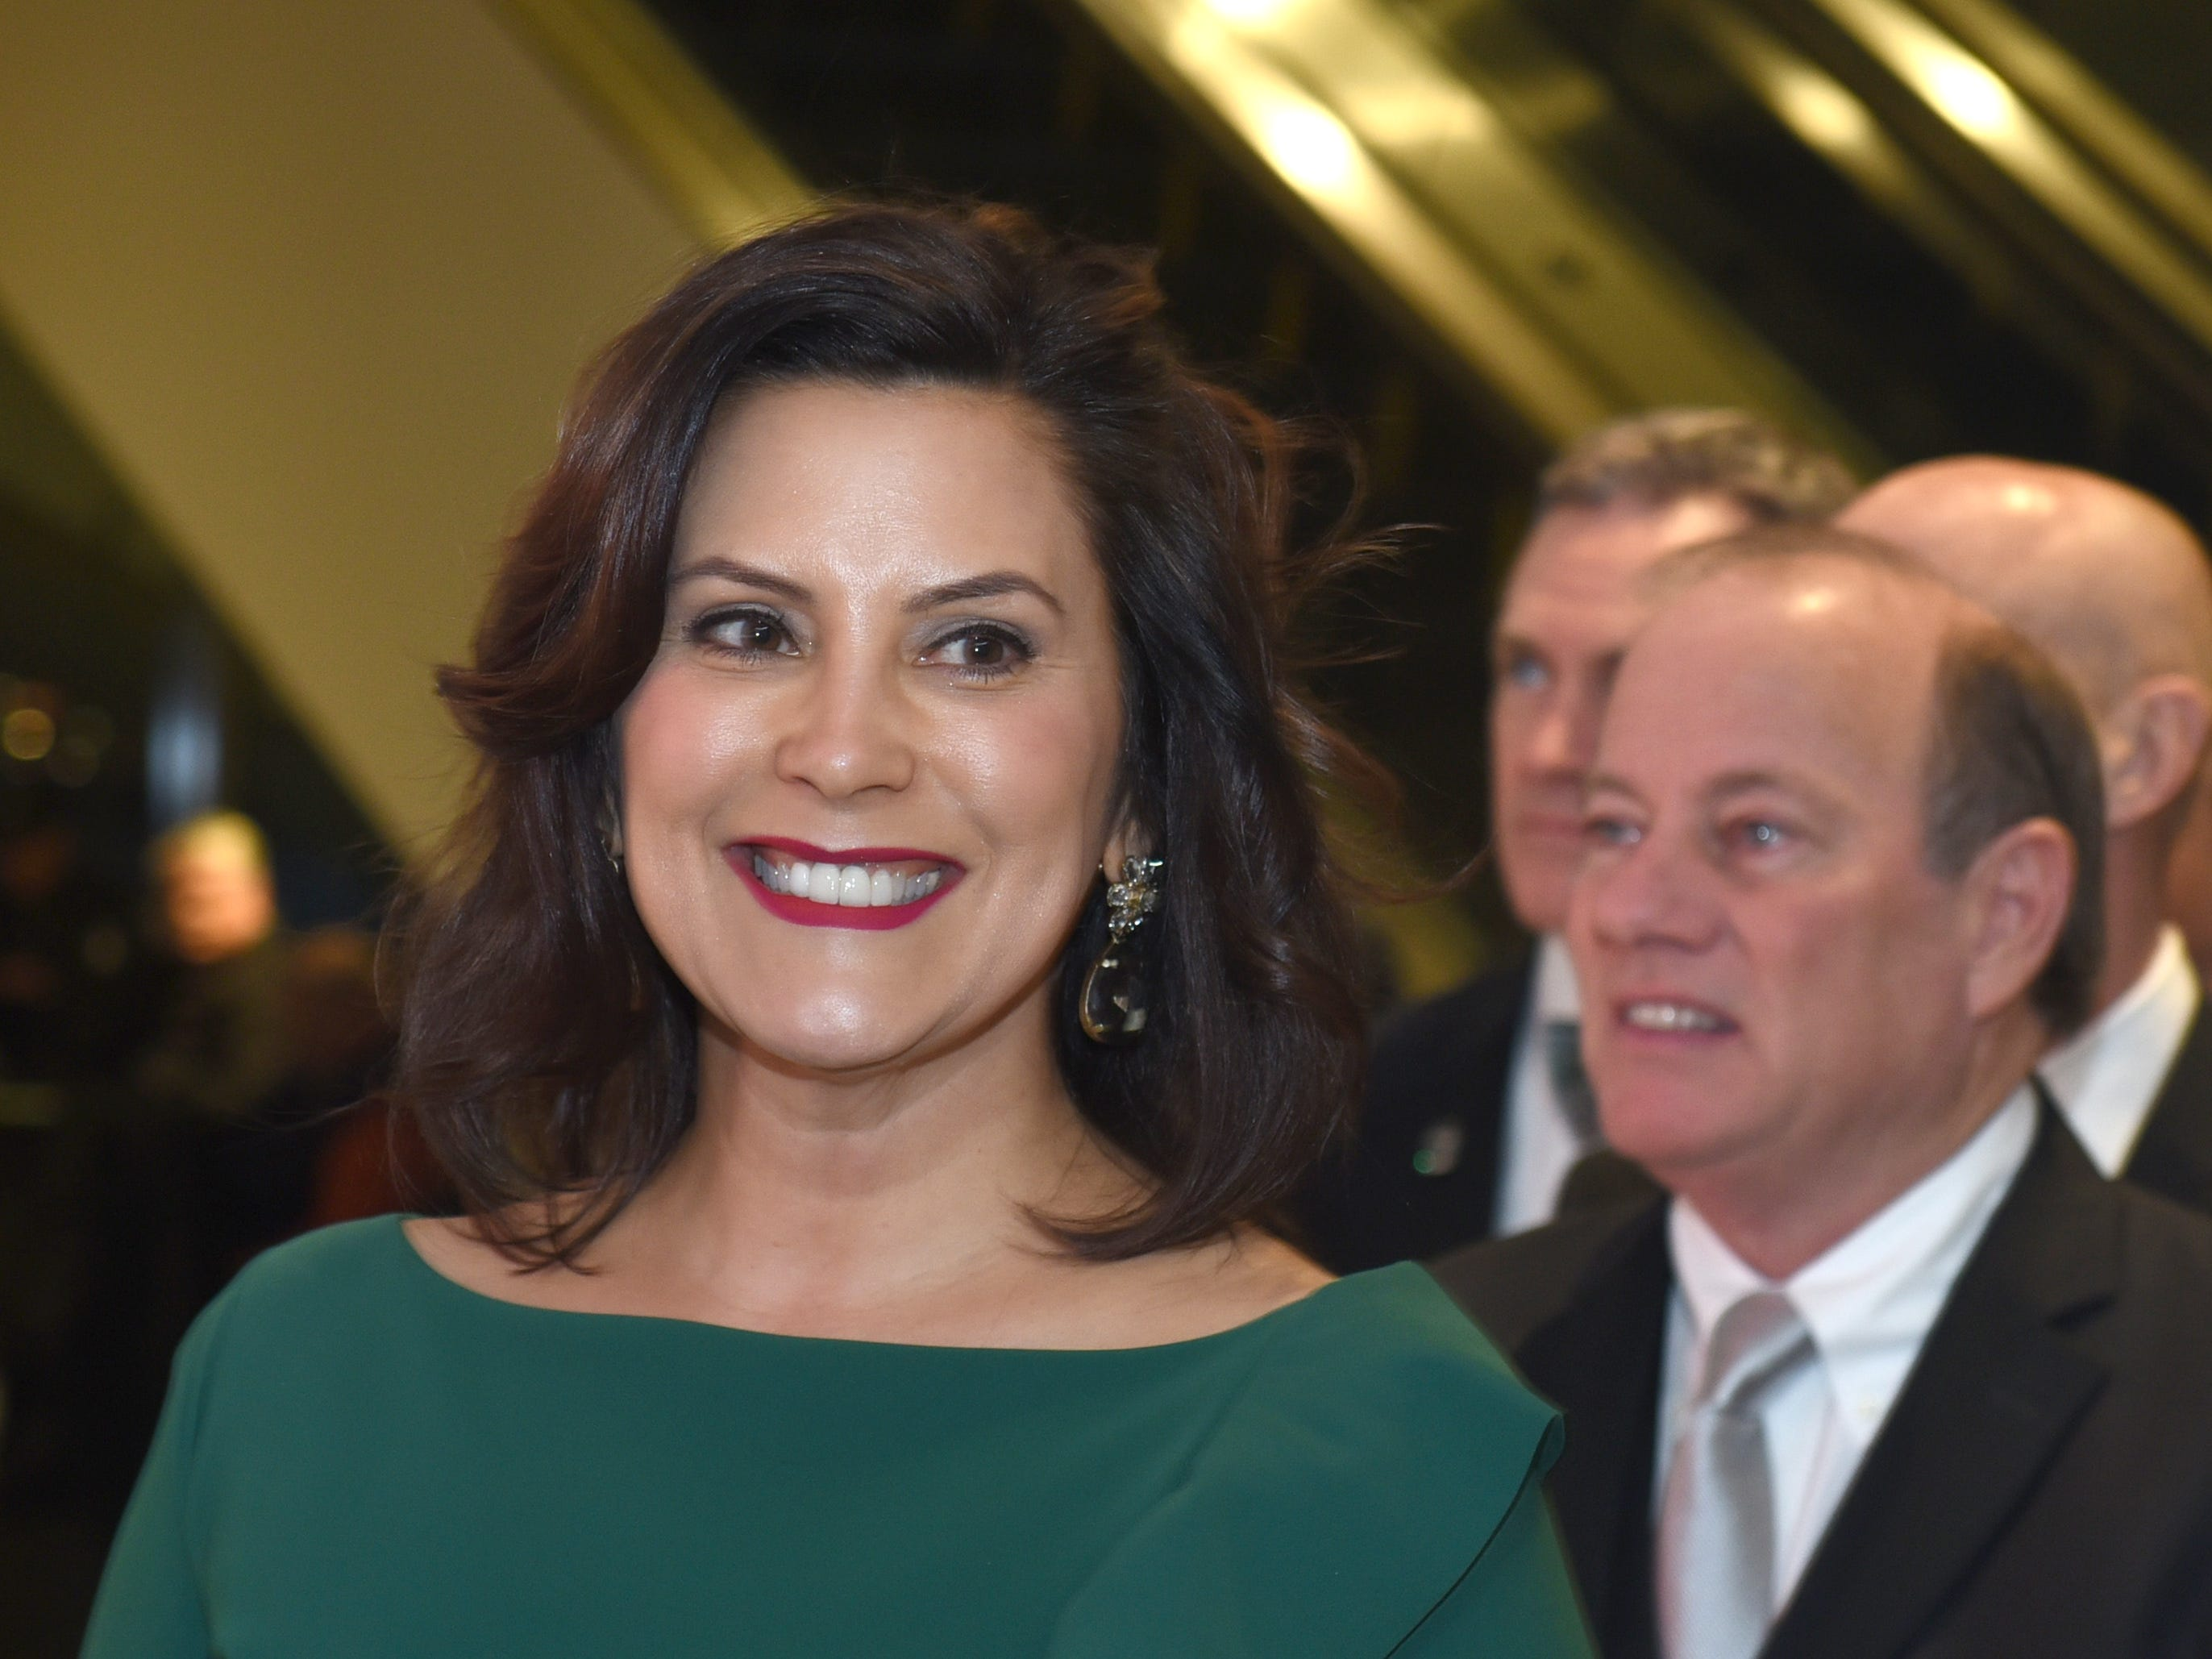 Gov. Gretchen Whitmer smiles as she enters the atrium stage with Detroit Mayor Mike Duggan behind her.